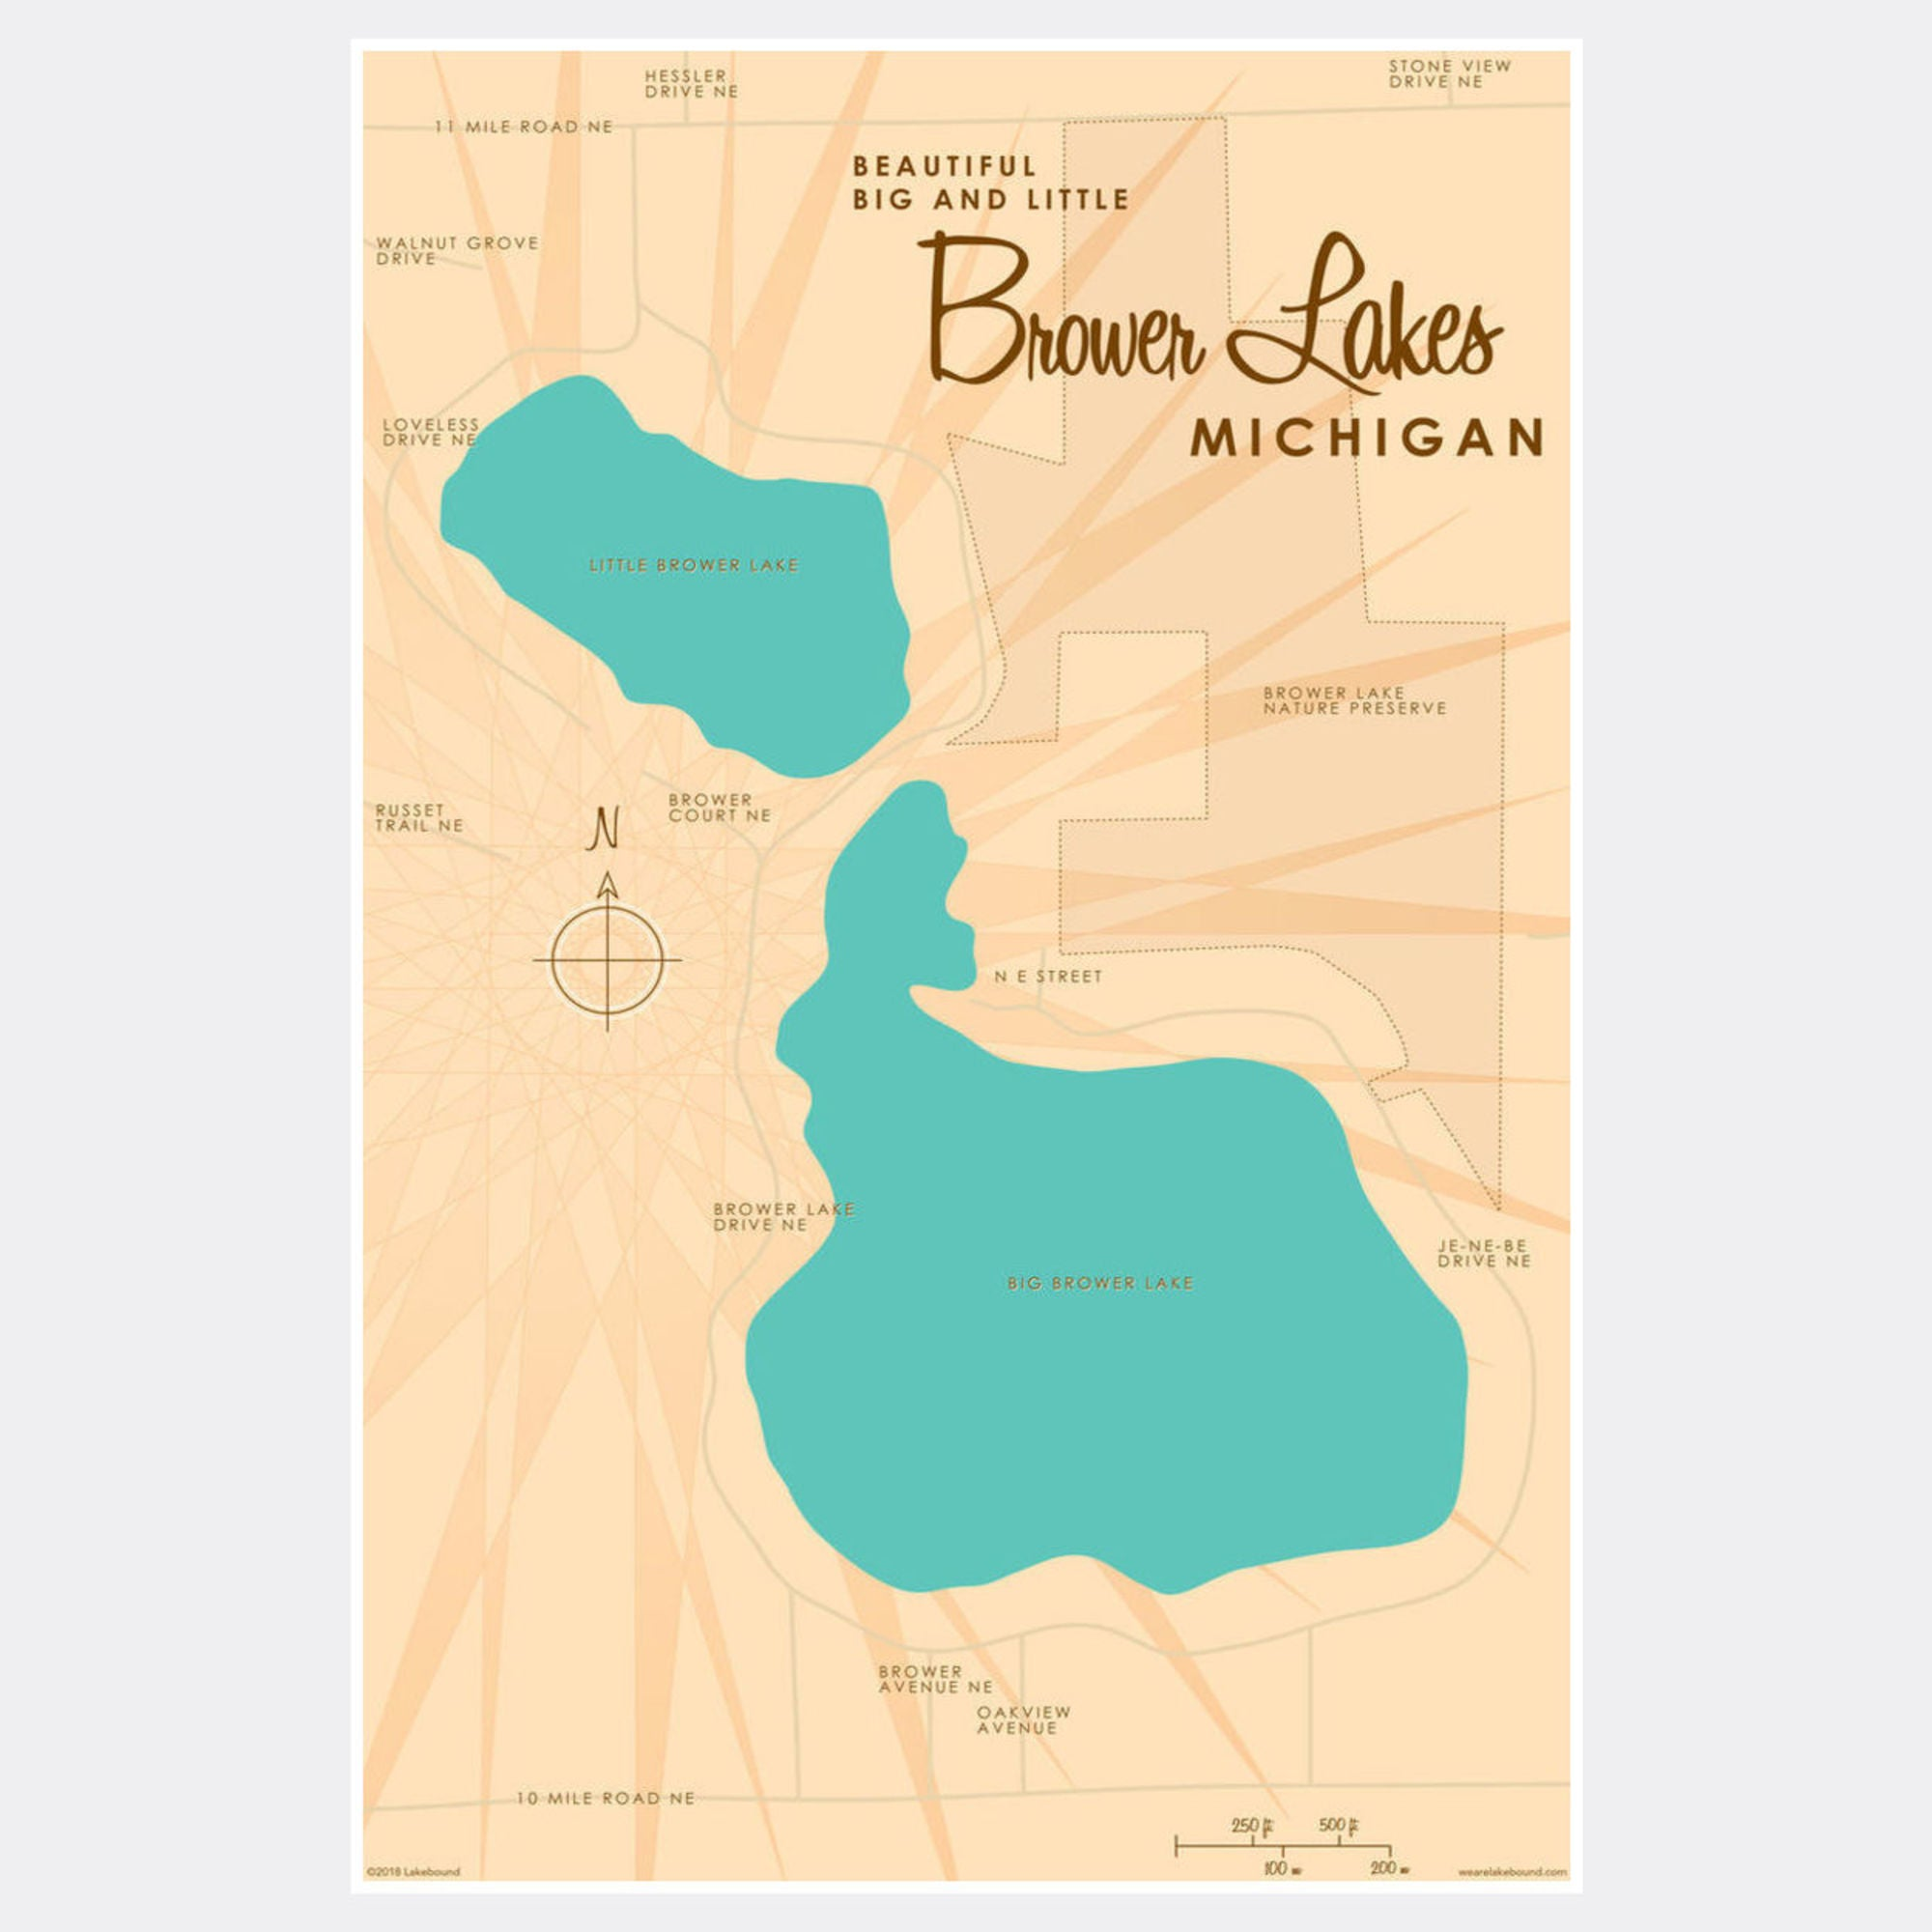 Big and Little Brower Lakes Michigan, Paper Print